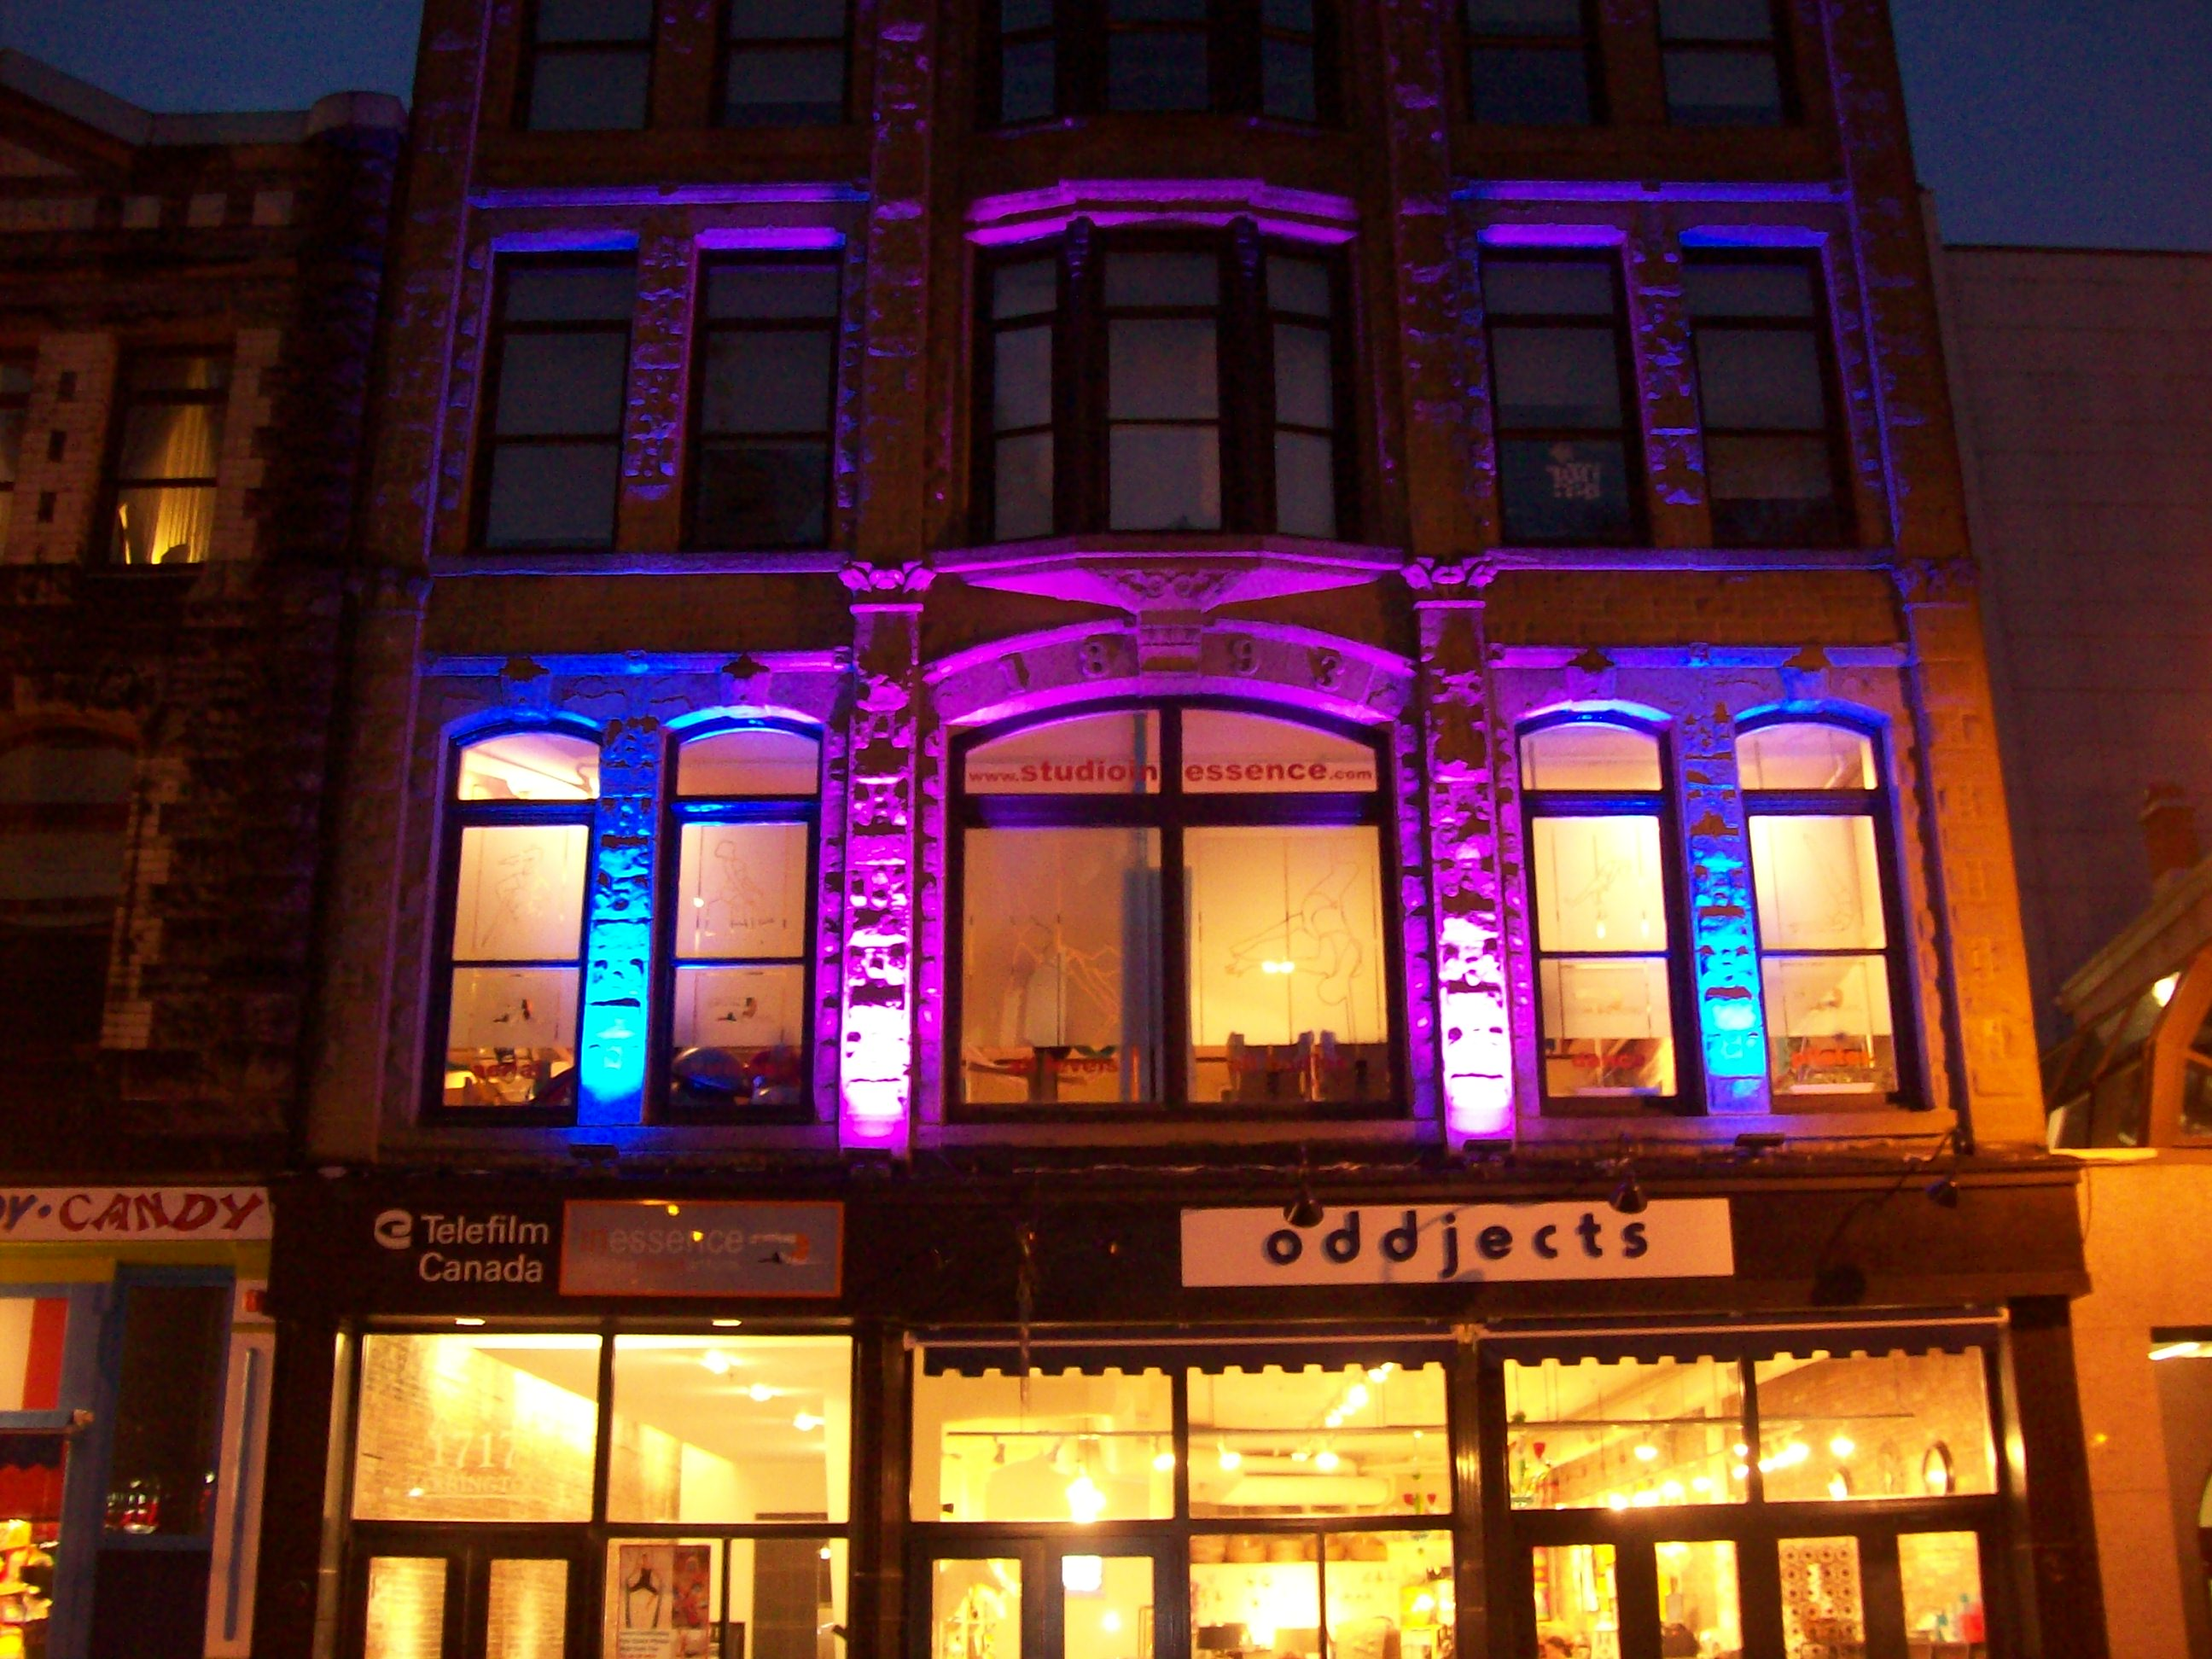 Ledelco custom led lights and lighting in halifax nova scotia 1717 purple 2 heritage building gets noticed mozeypictures Images